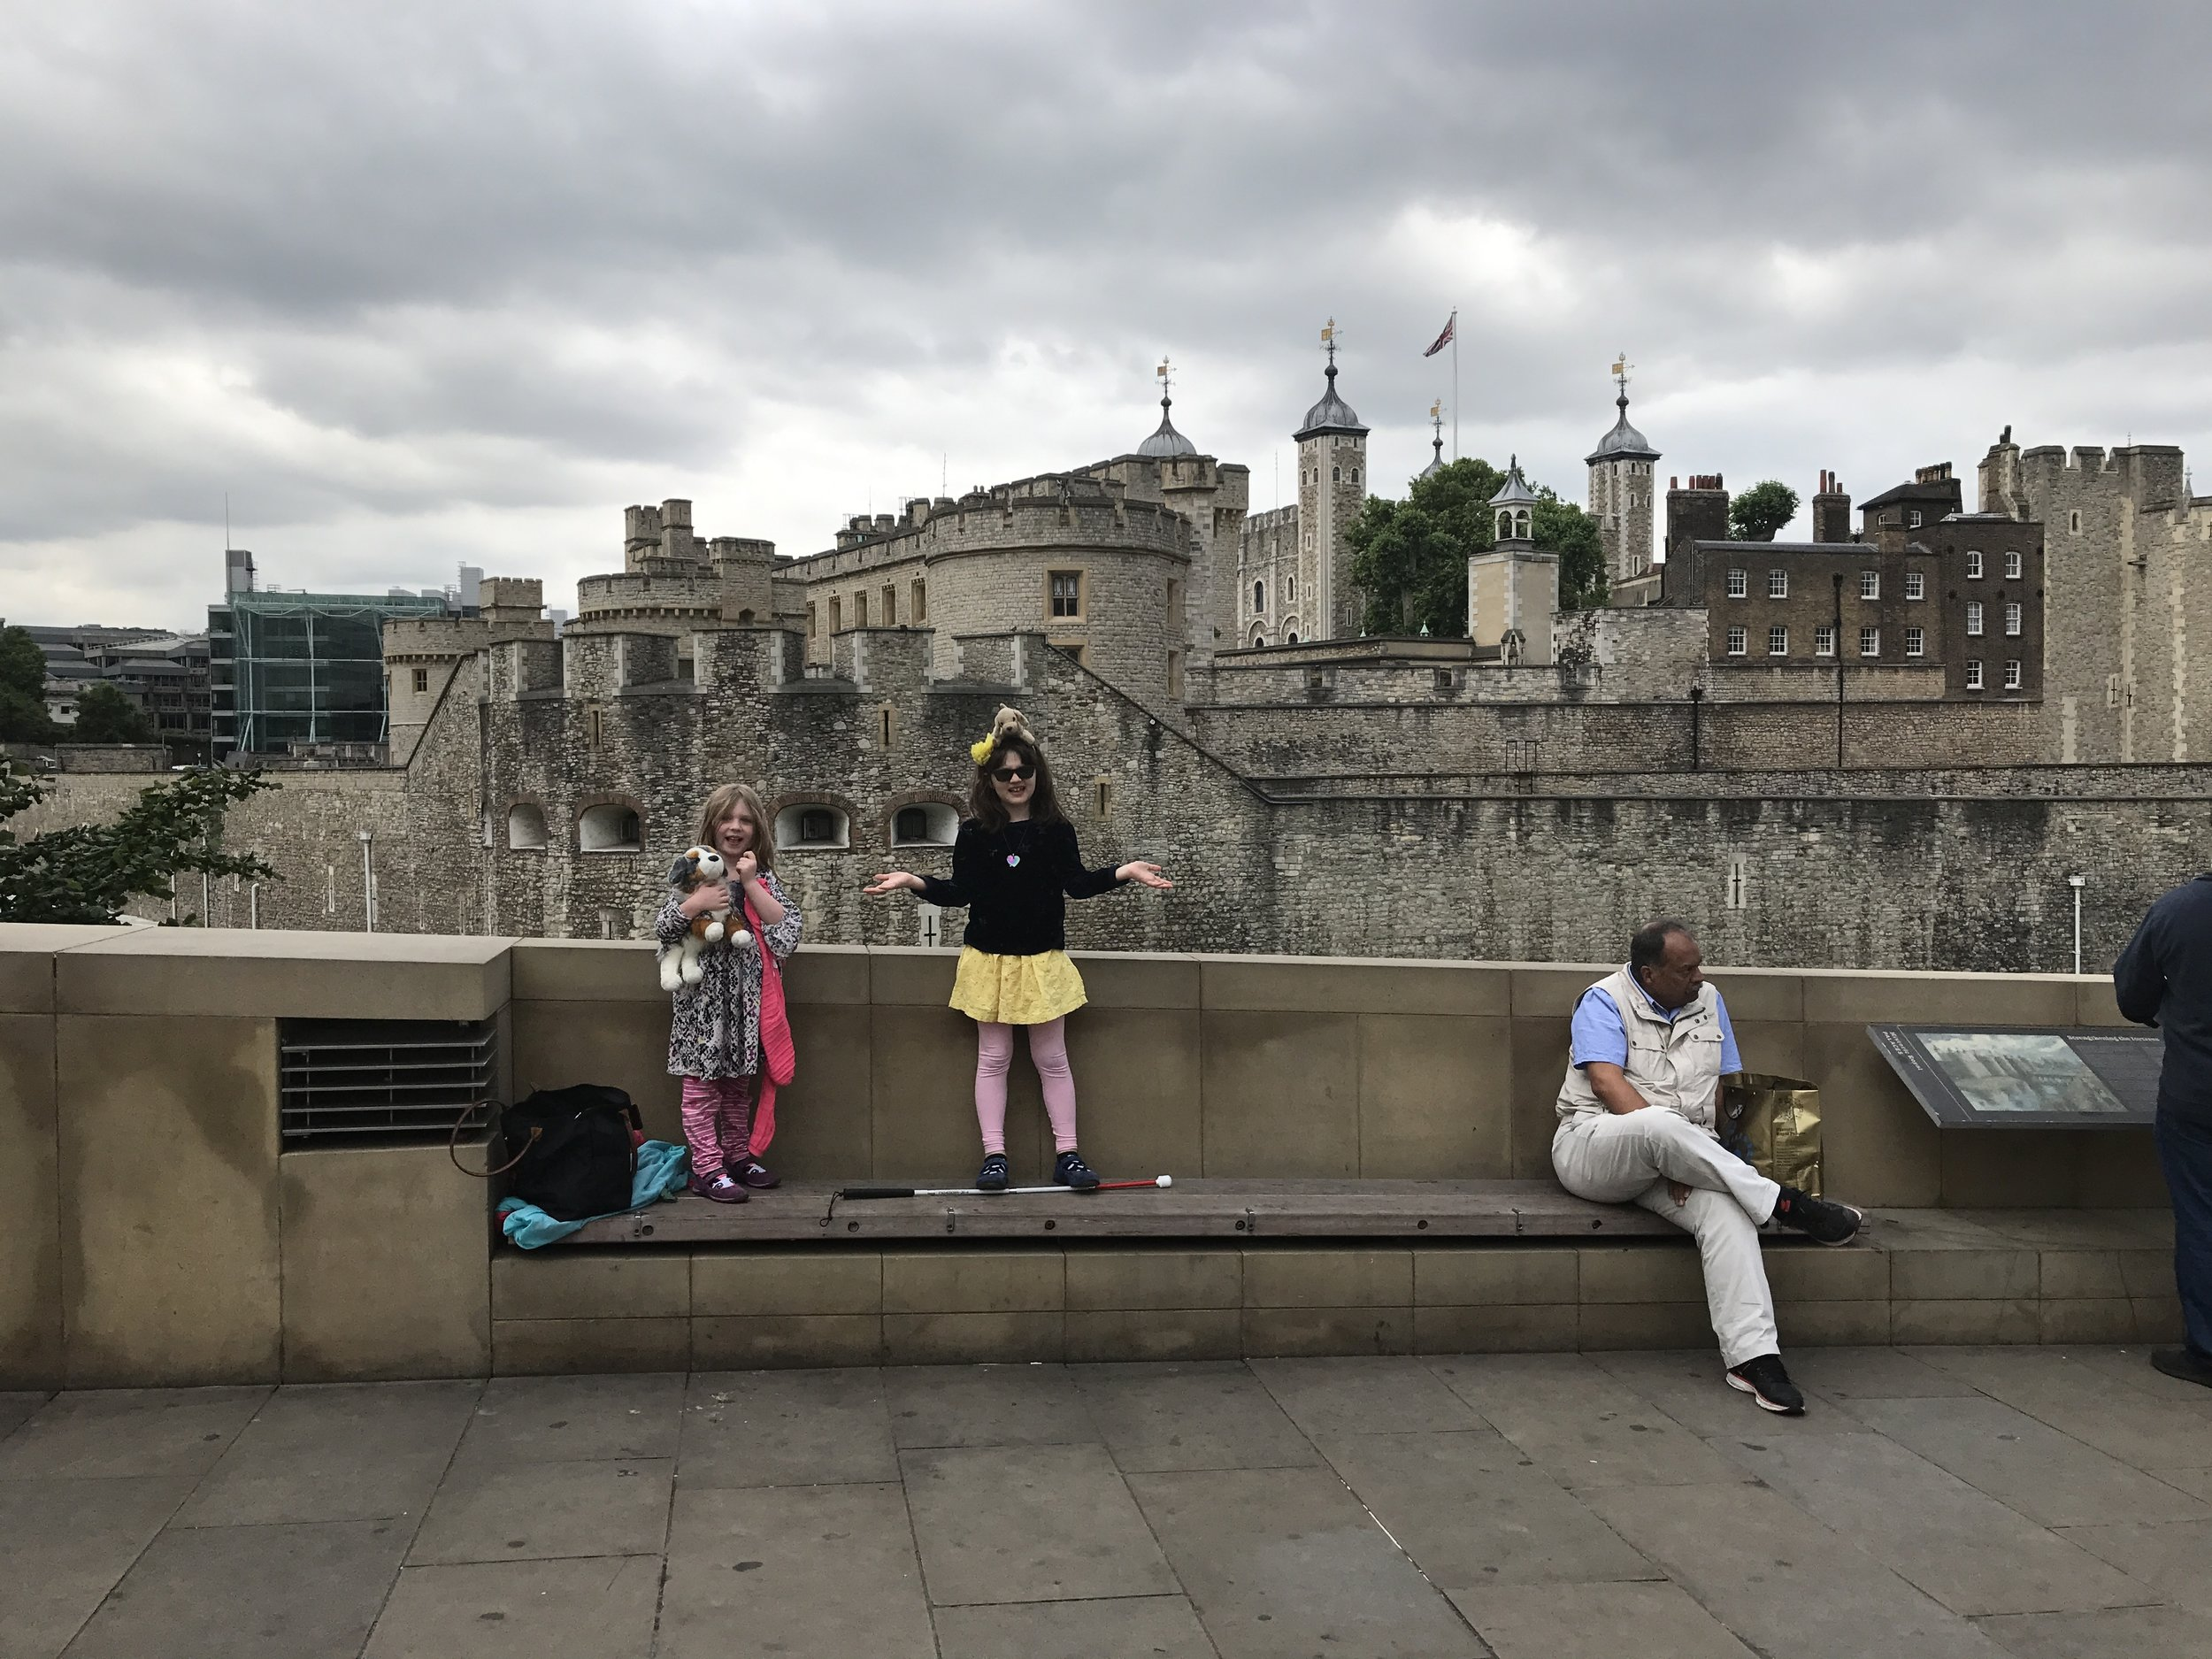 Not quite a visit to the Tower of London